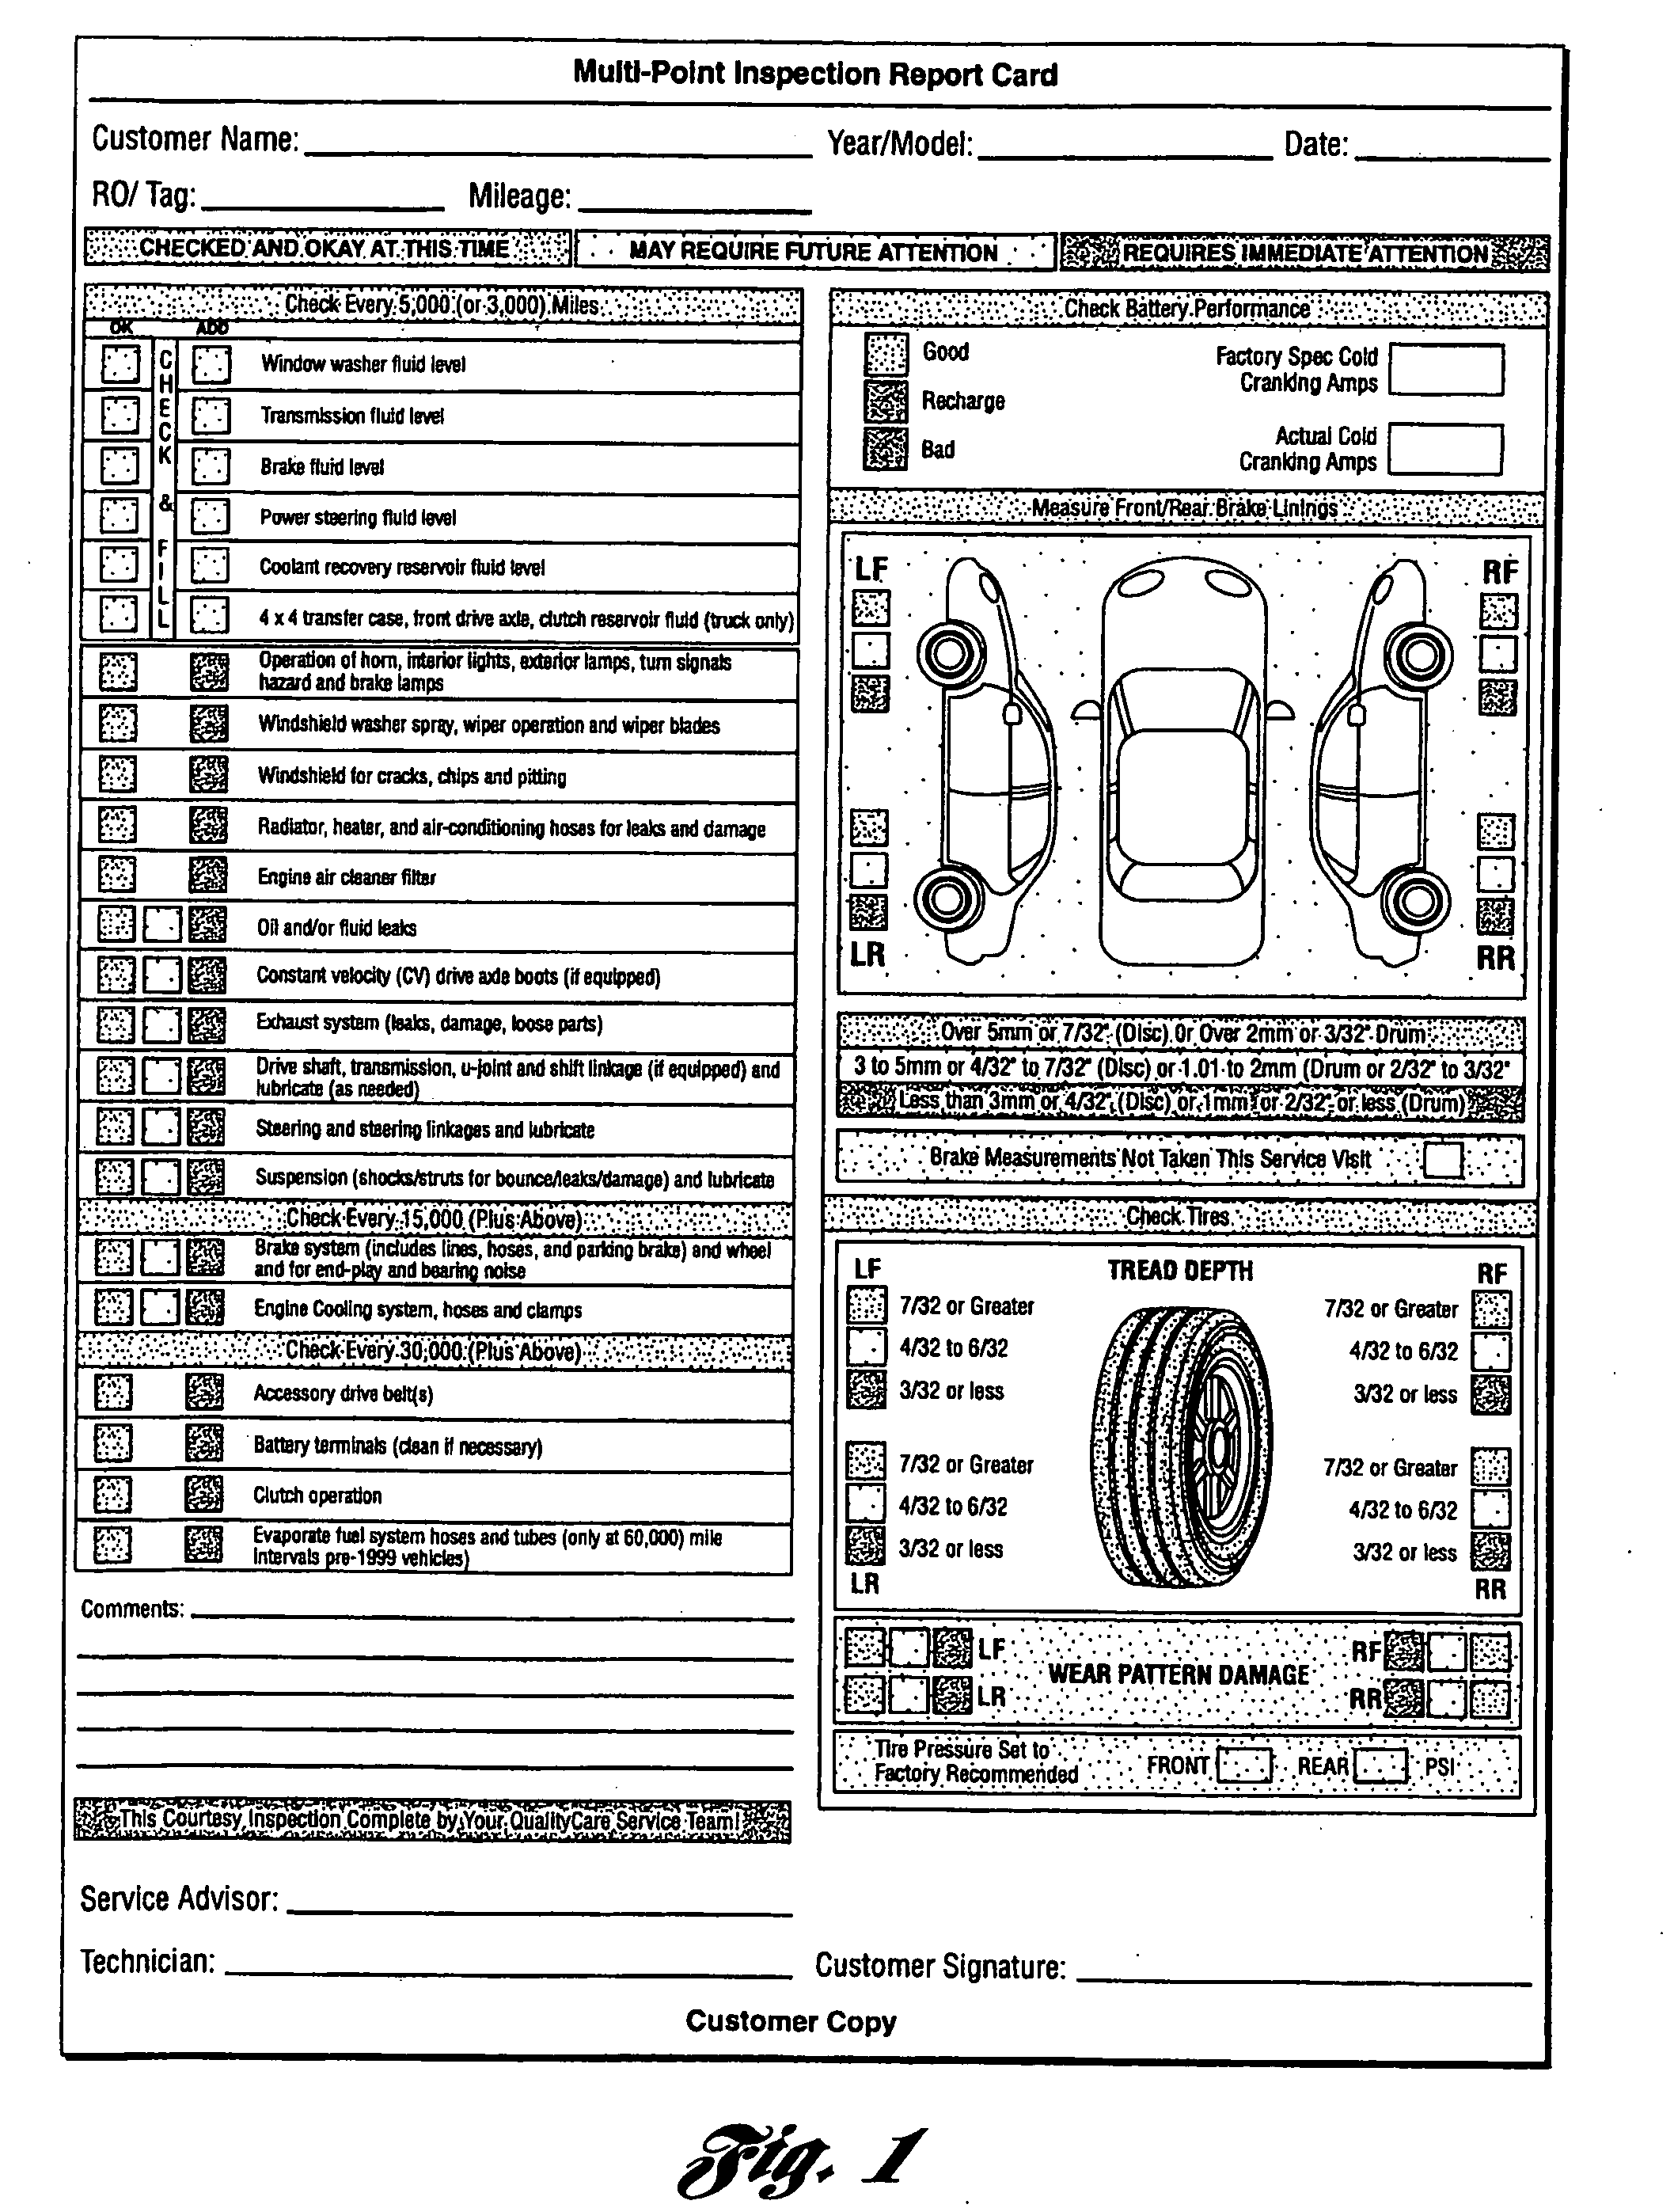 Free Vehicle Inspection Form Template